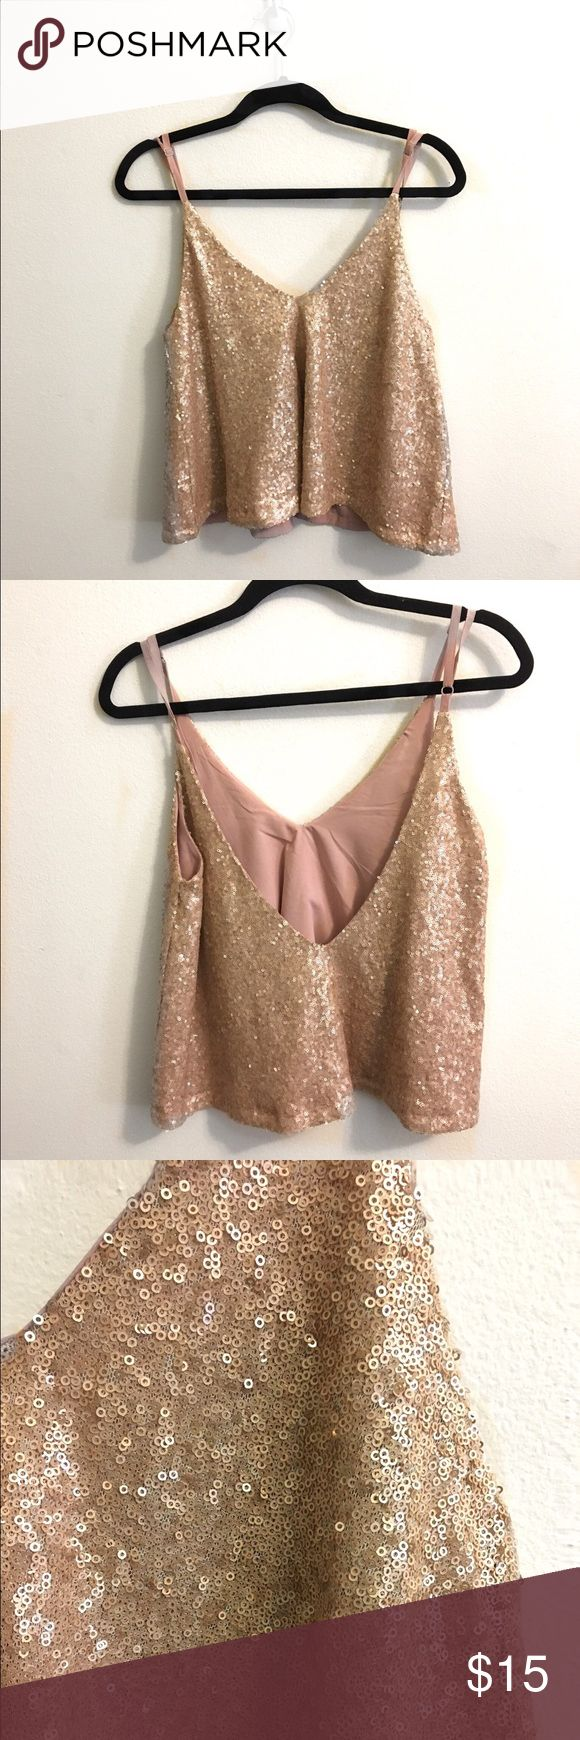 Sparkly Crop Top Only worn once! It is a size small but it has a very nice flow to it. I have a bundle deal! Tobi Tops Crop Tops